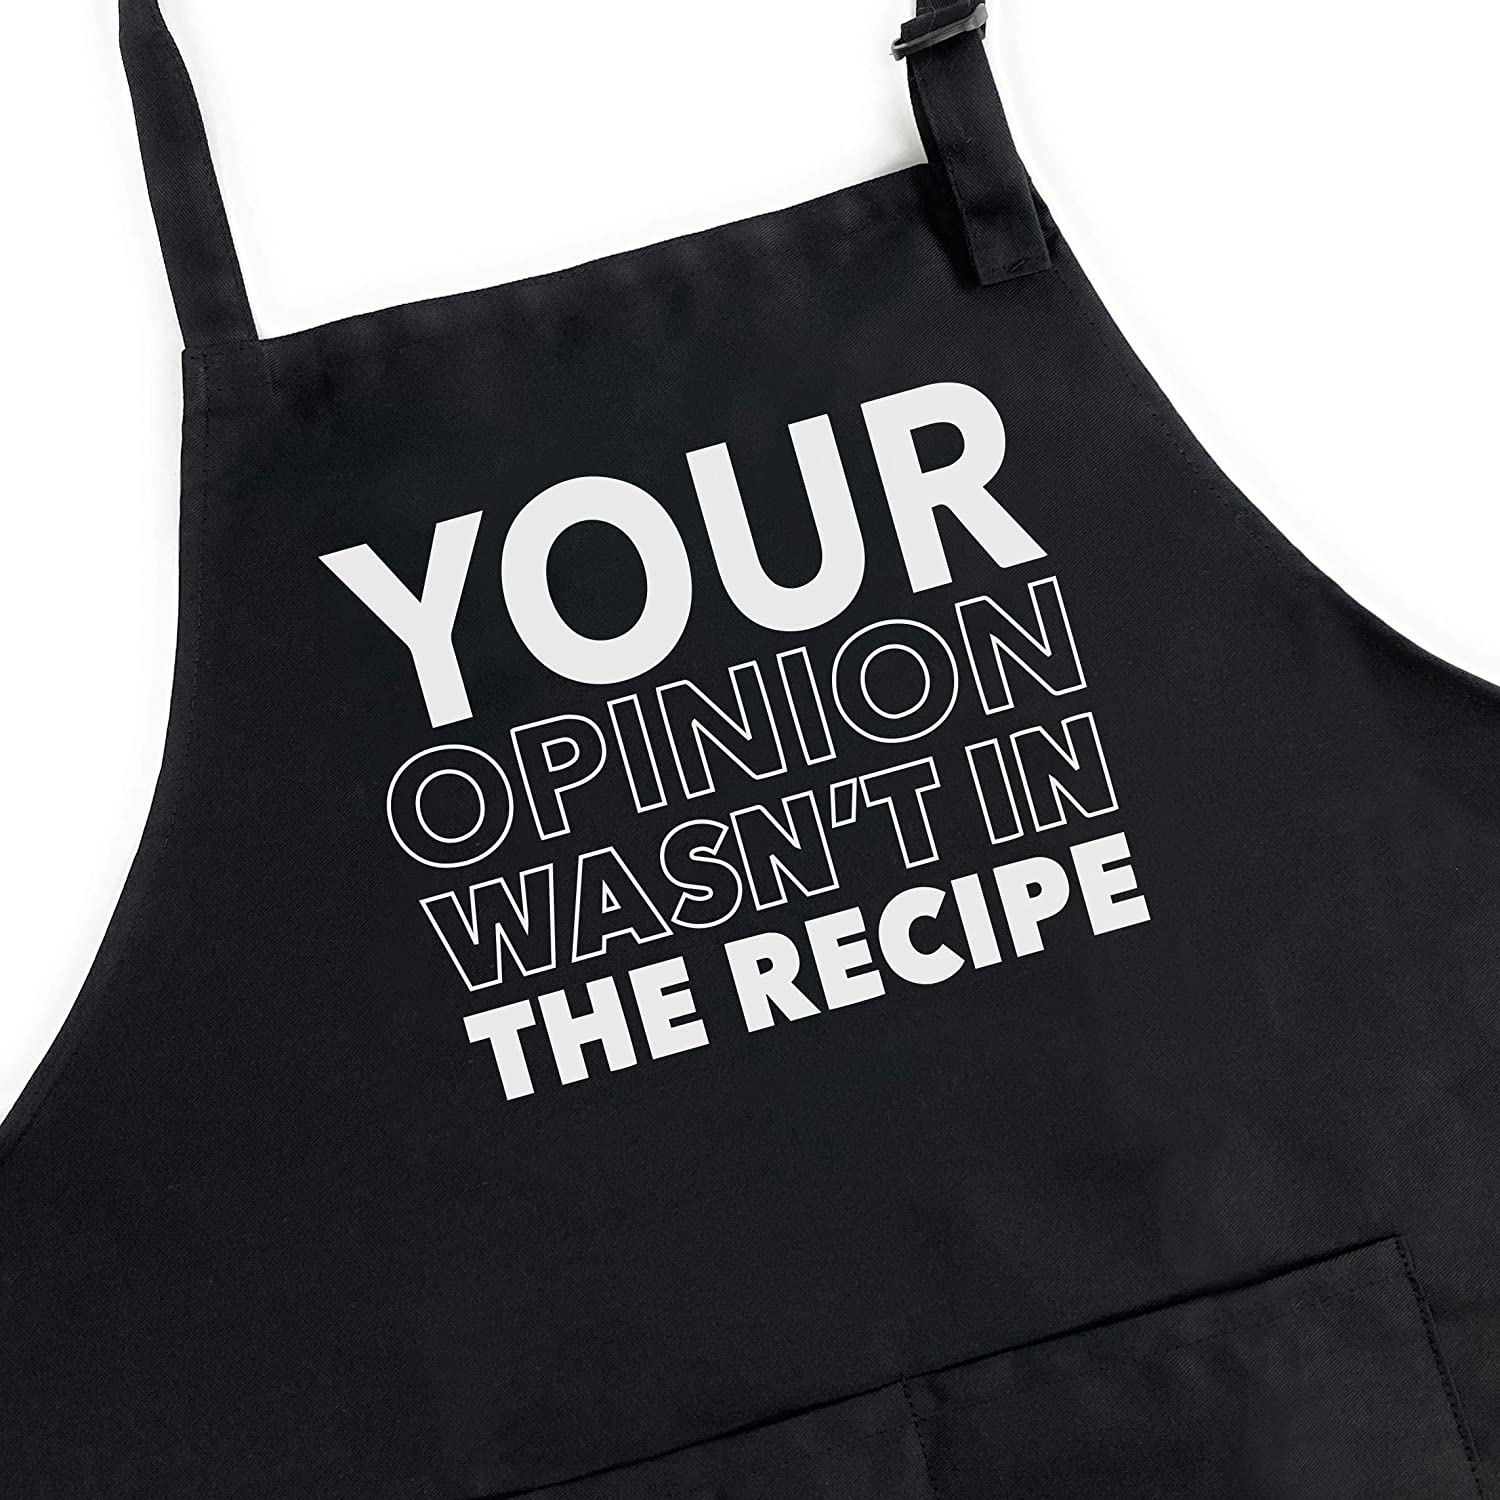 UP THE MOMENT Your Opinion Wasn't in the Recipe Apron, Funny Apron for Men, BBQ Grill Apron, Chef Apron, Funny Apron for Dad, Mens Funny Apron, Funny Chef Apron for Men